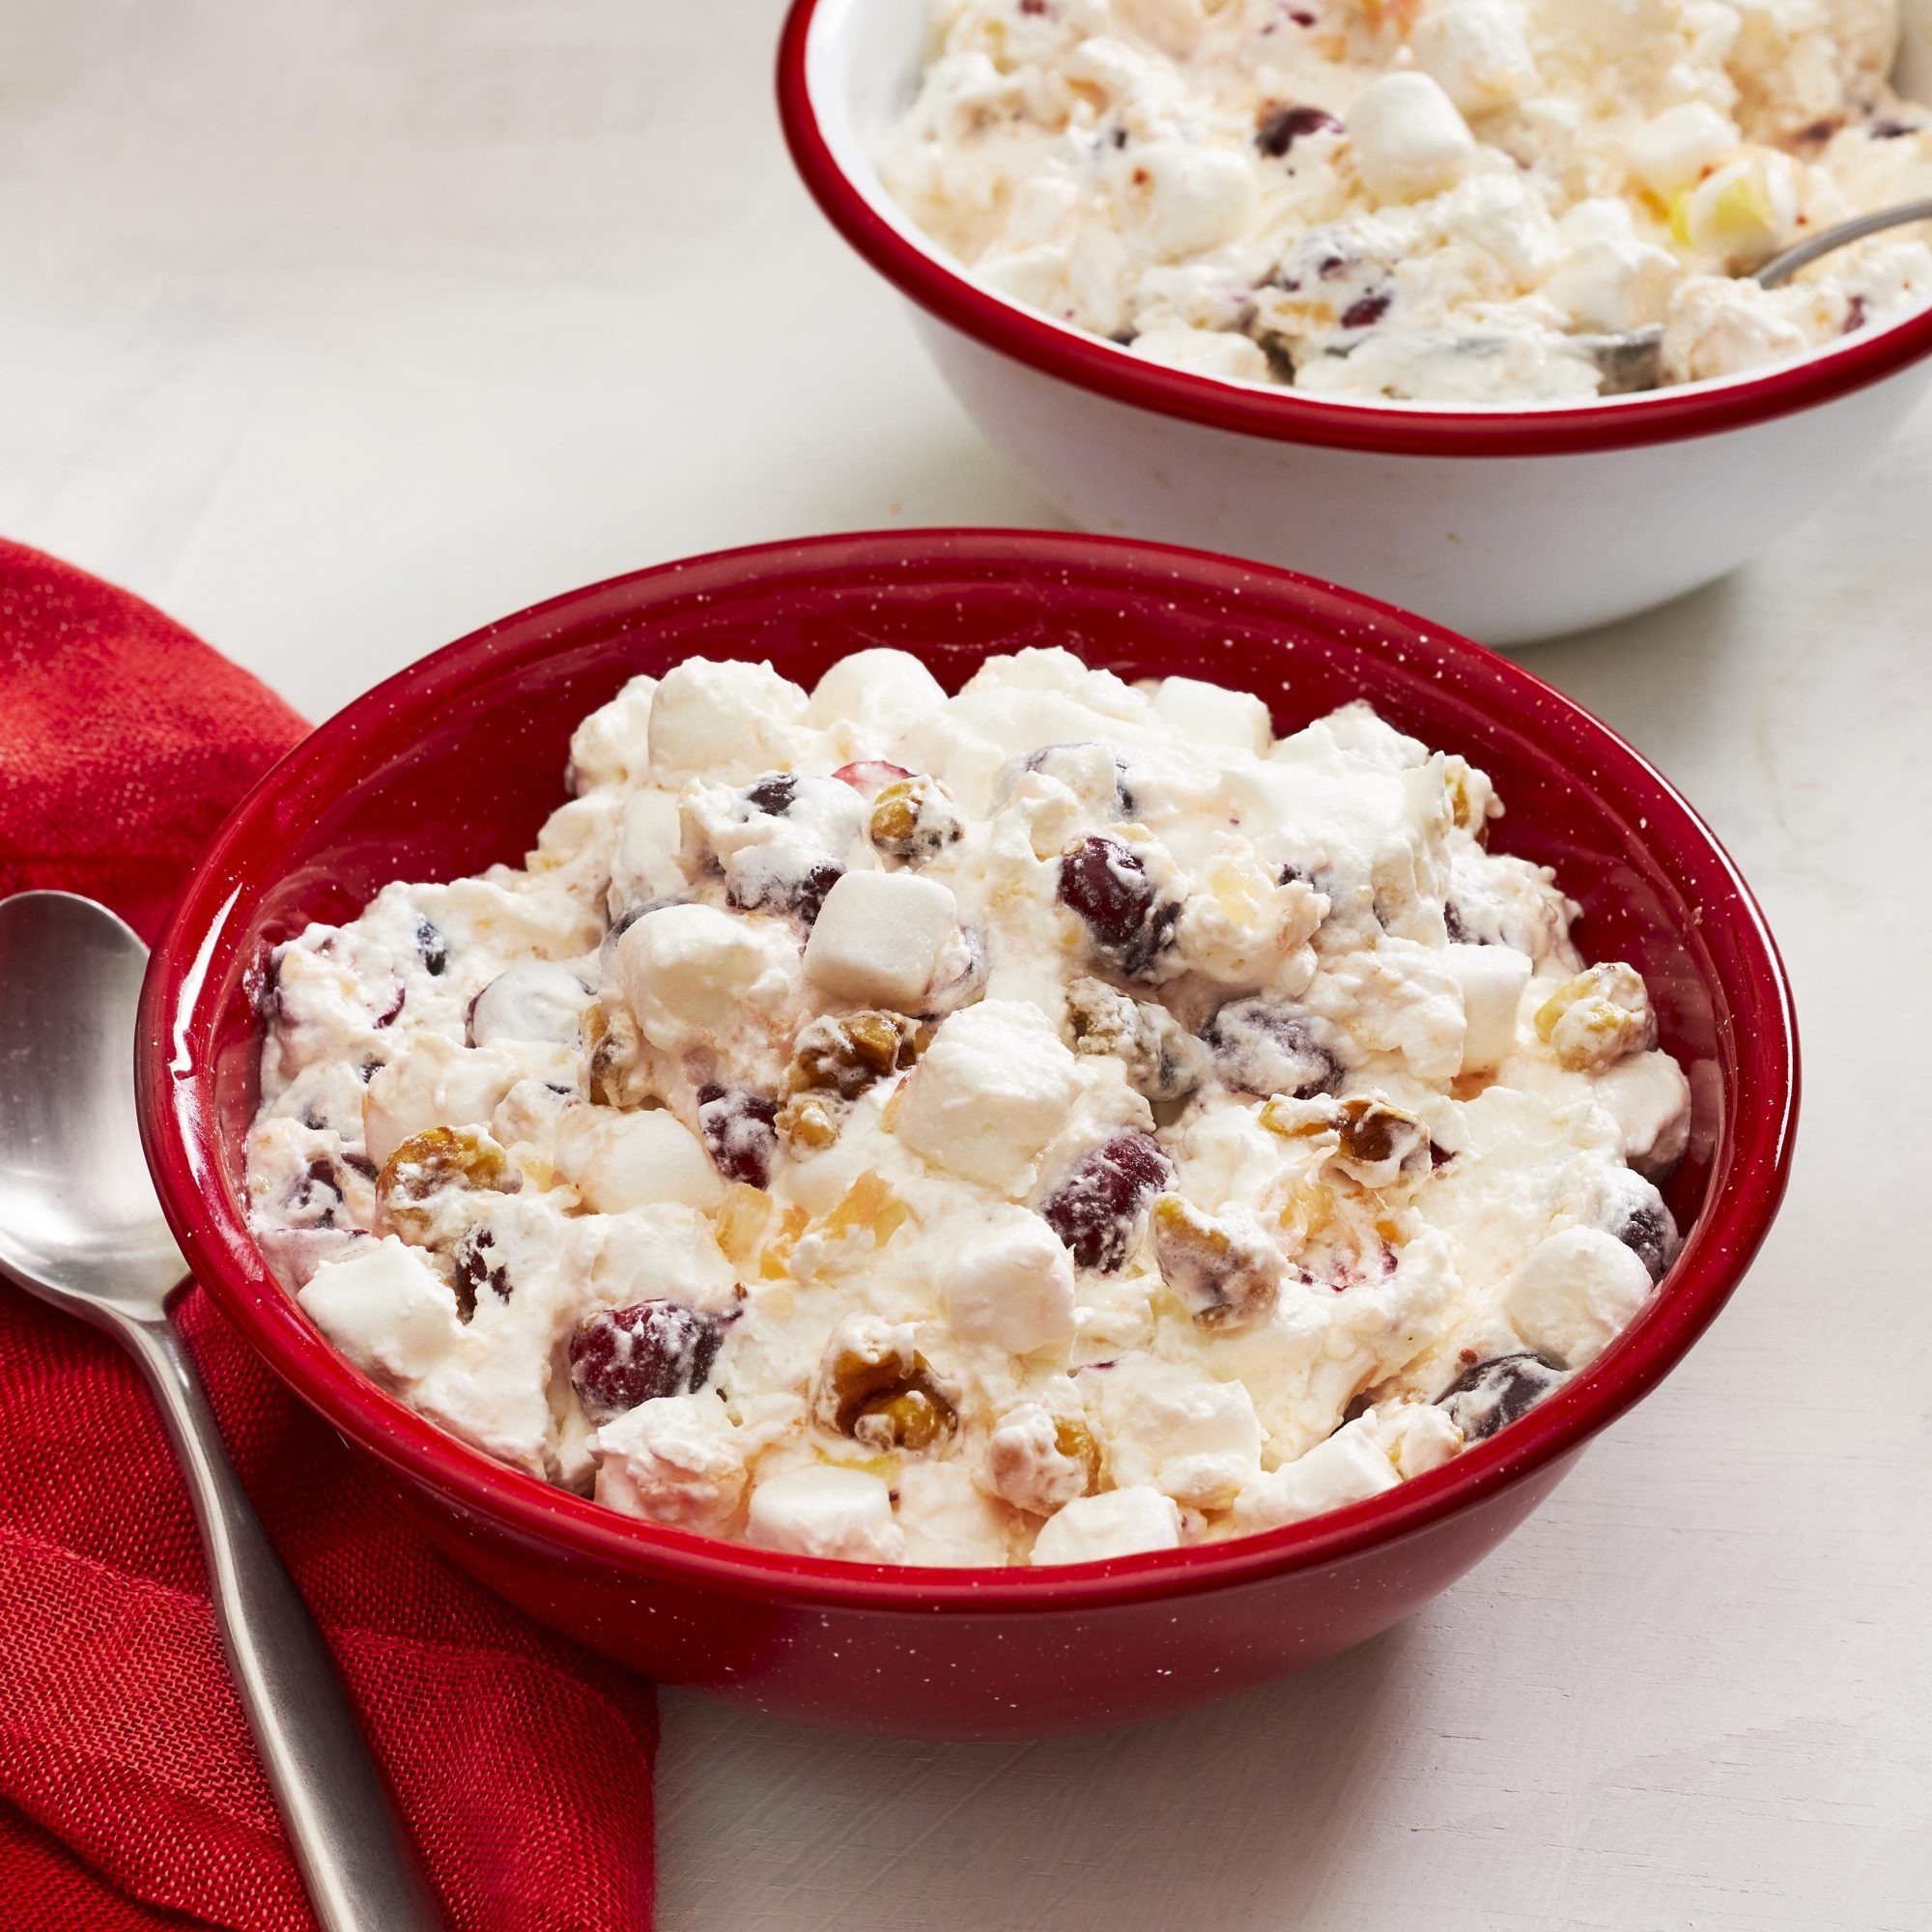 Two bowls of cranberry fluff, a red napkin, and a silver spoon.